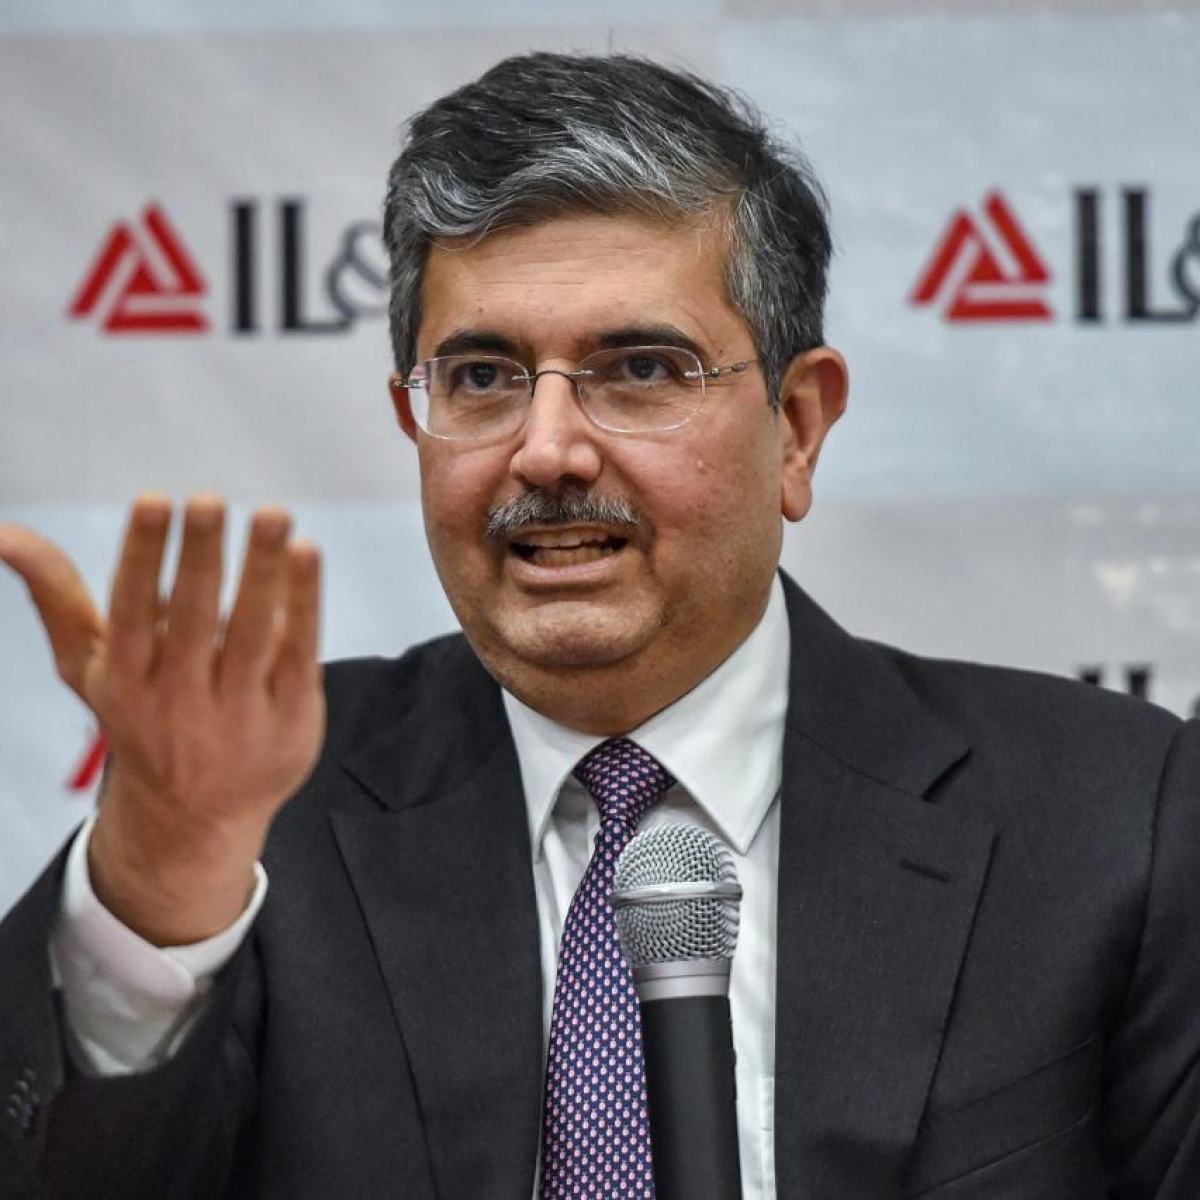 Nothing should be done to hurt interest of depositors: Kotak